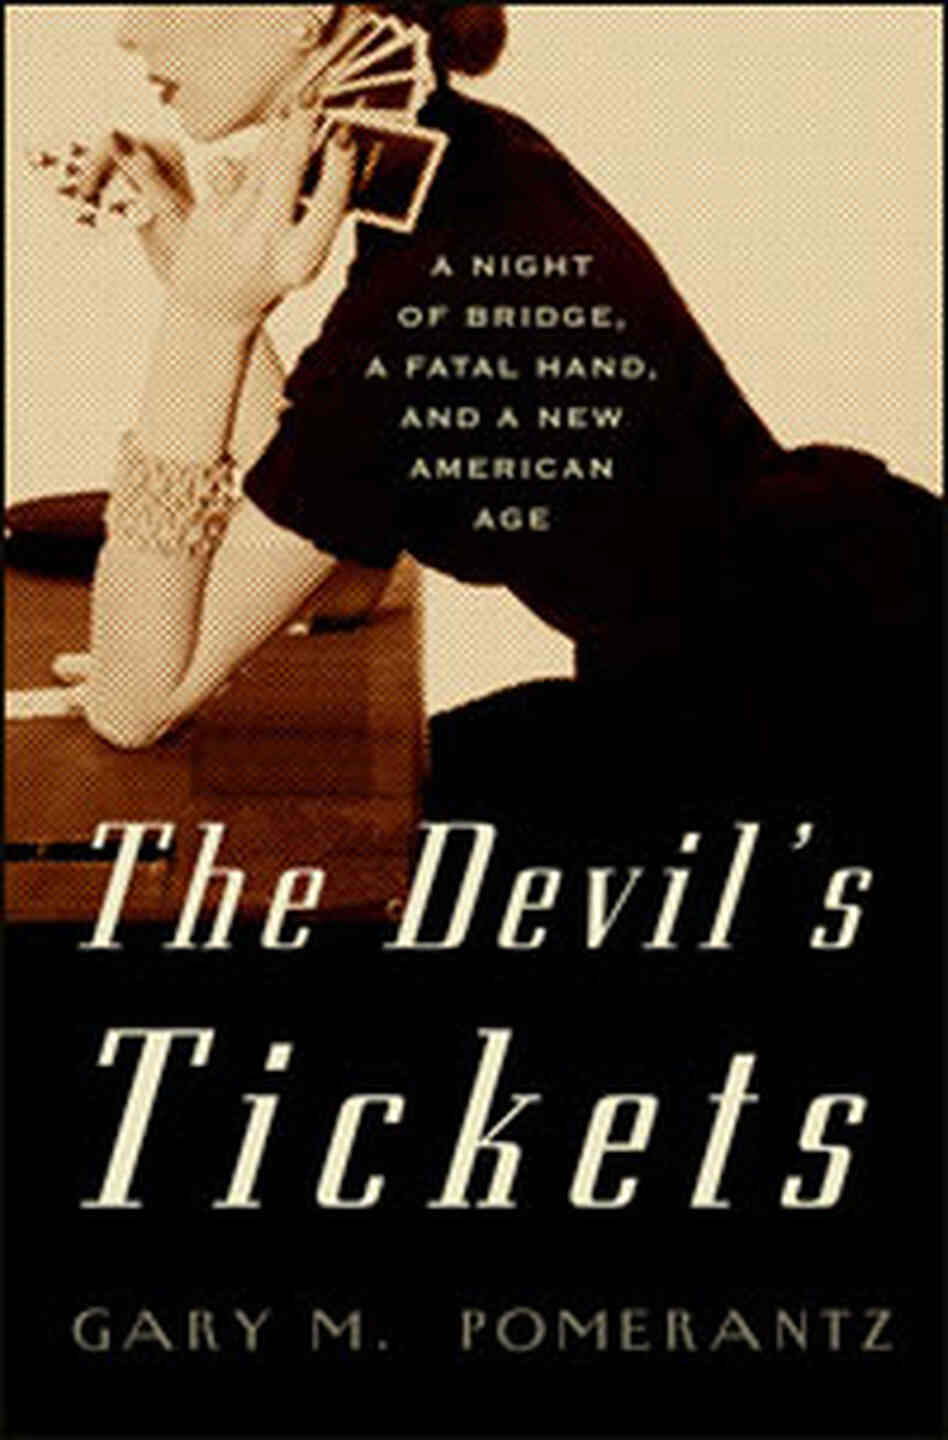 'The Devil's Tickets' cover